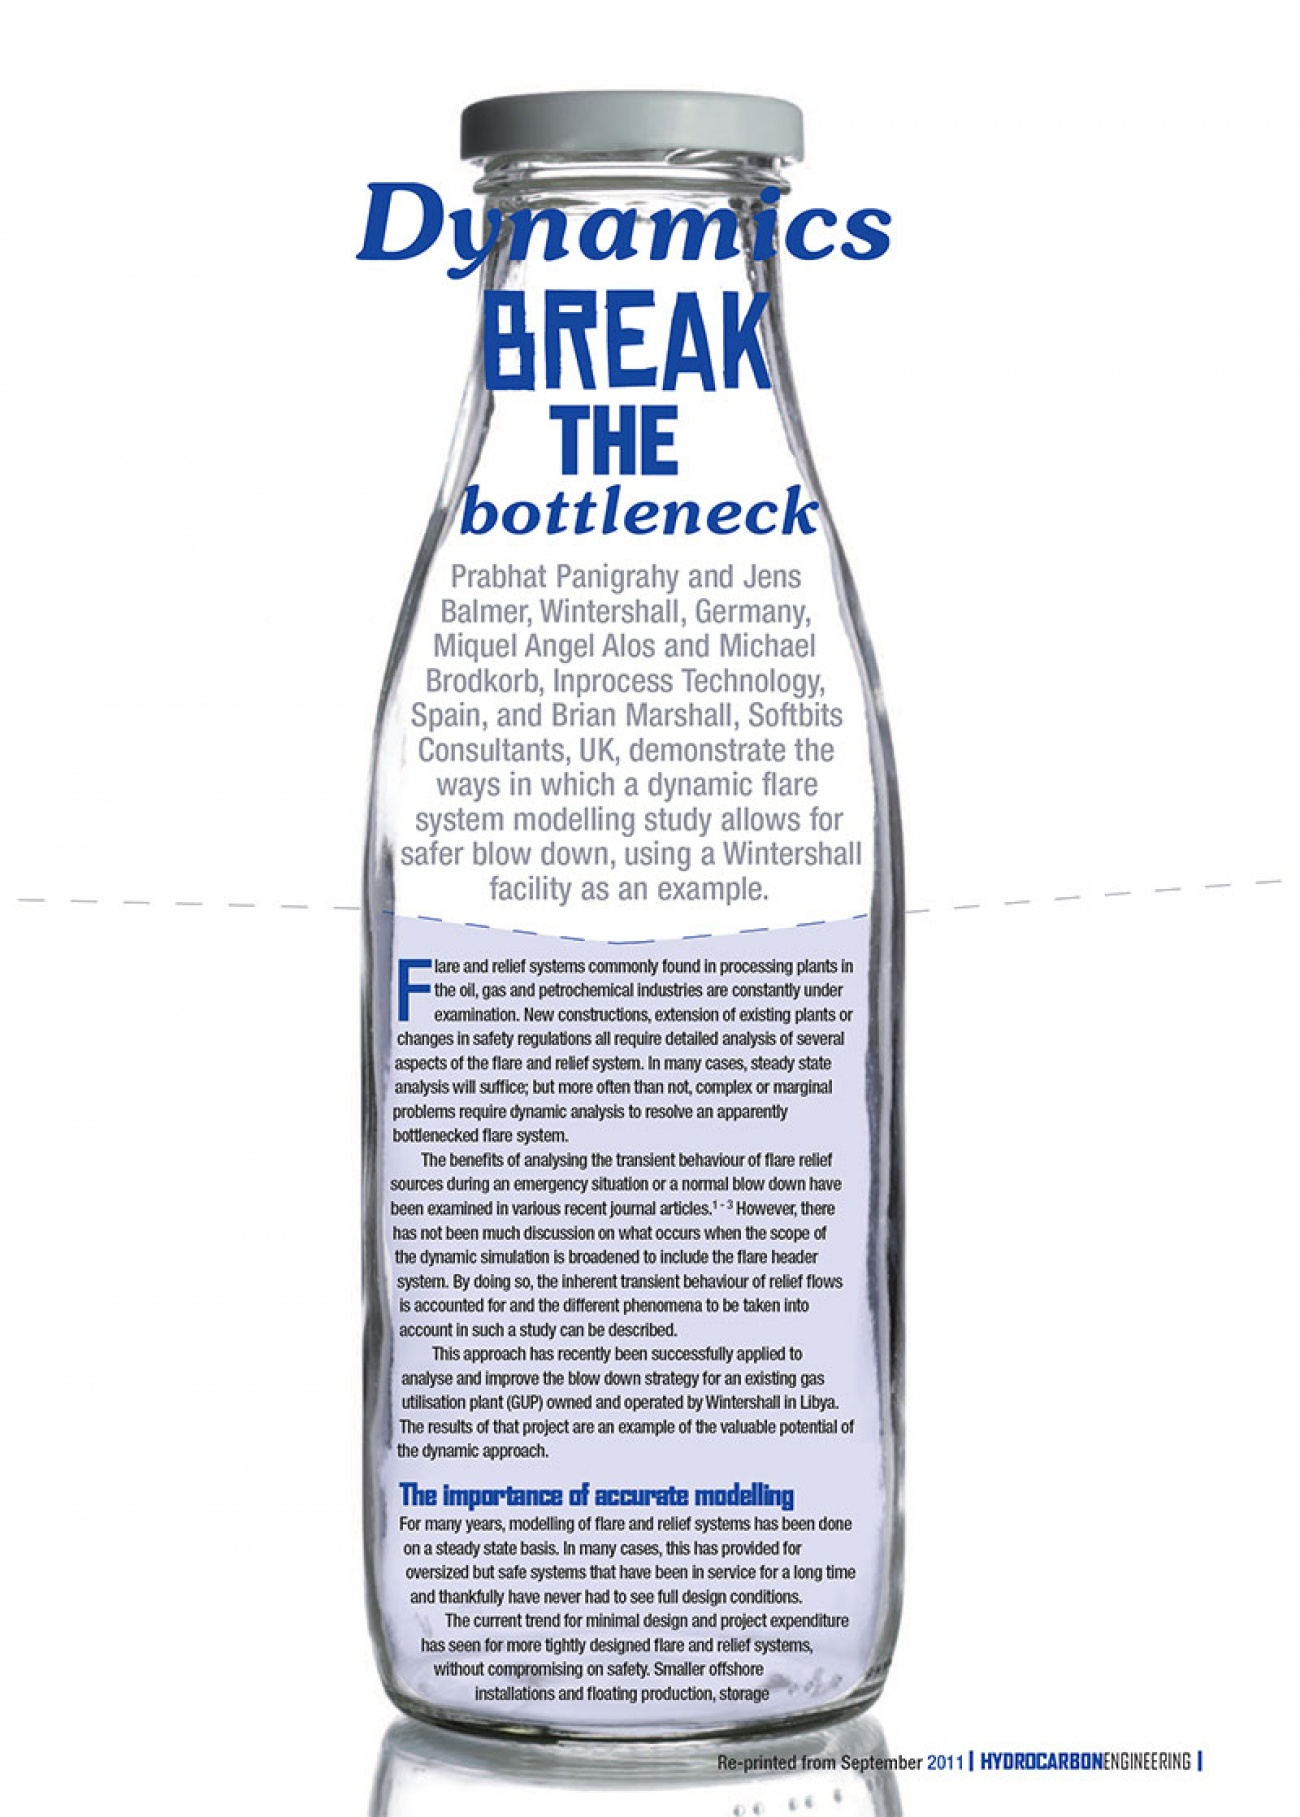 inprocess Dynamics break the bottleneck